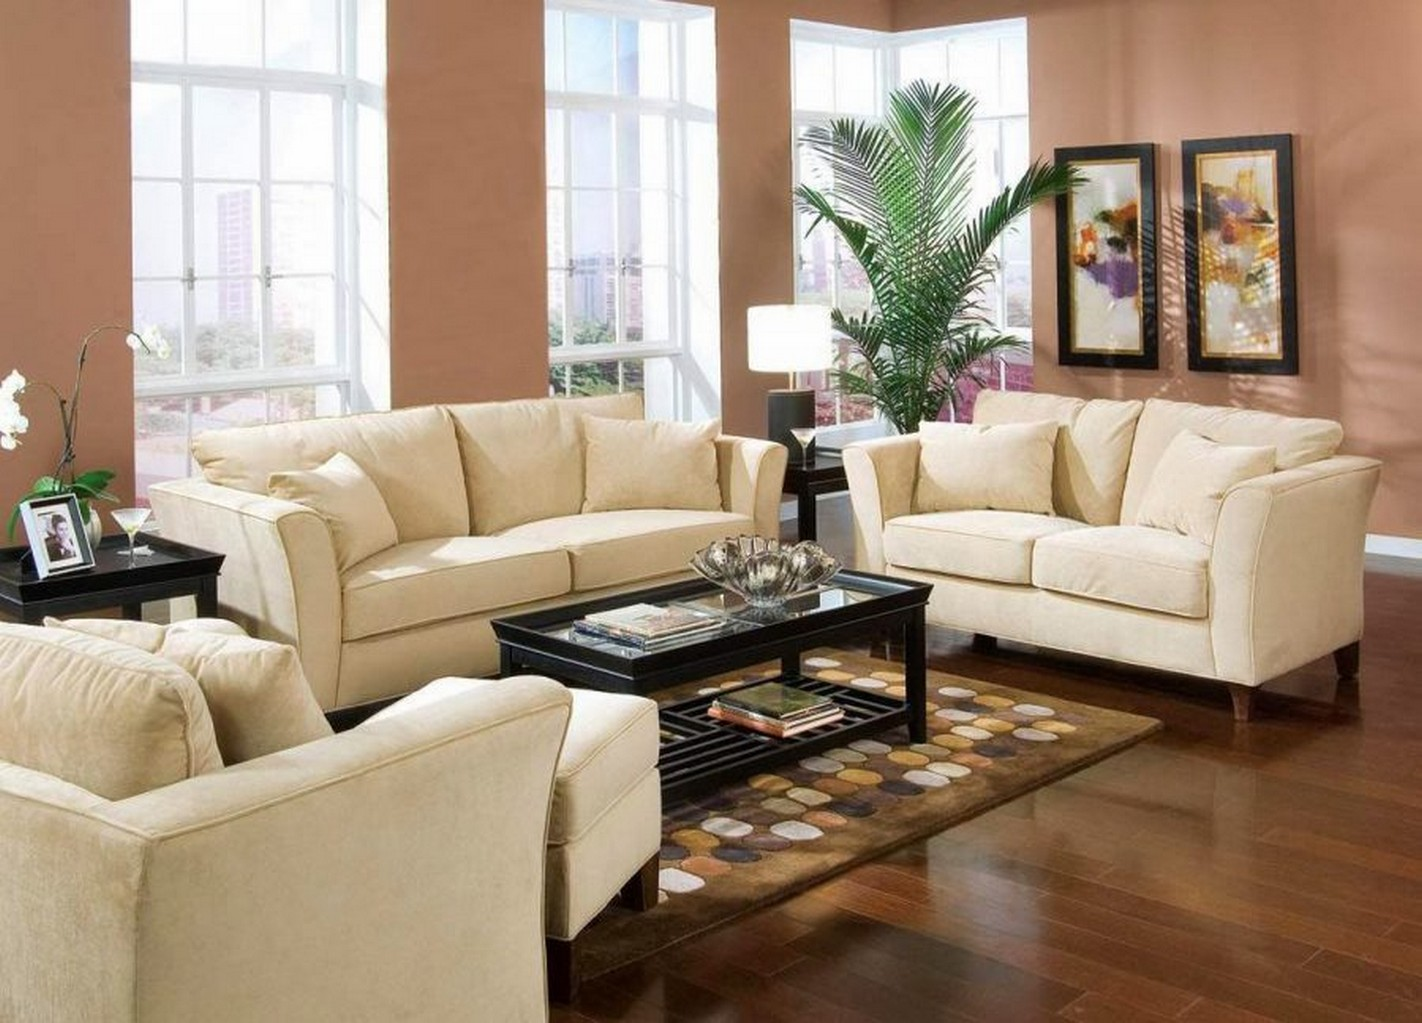 Small living room furniture ideas felish home project - Pictures ideas for living room ...